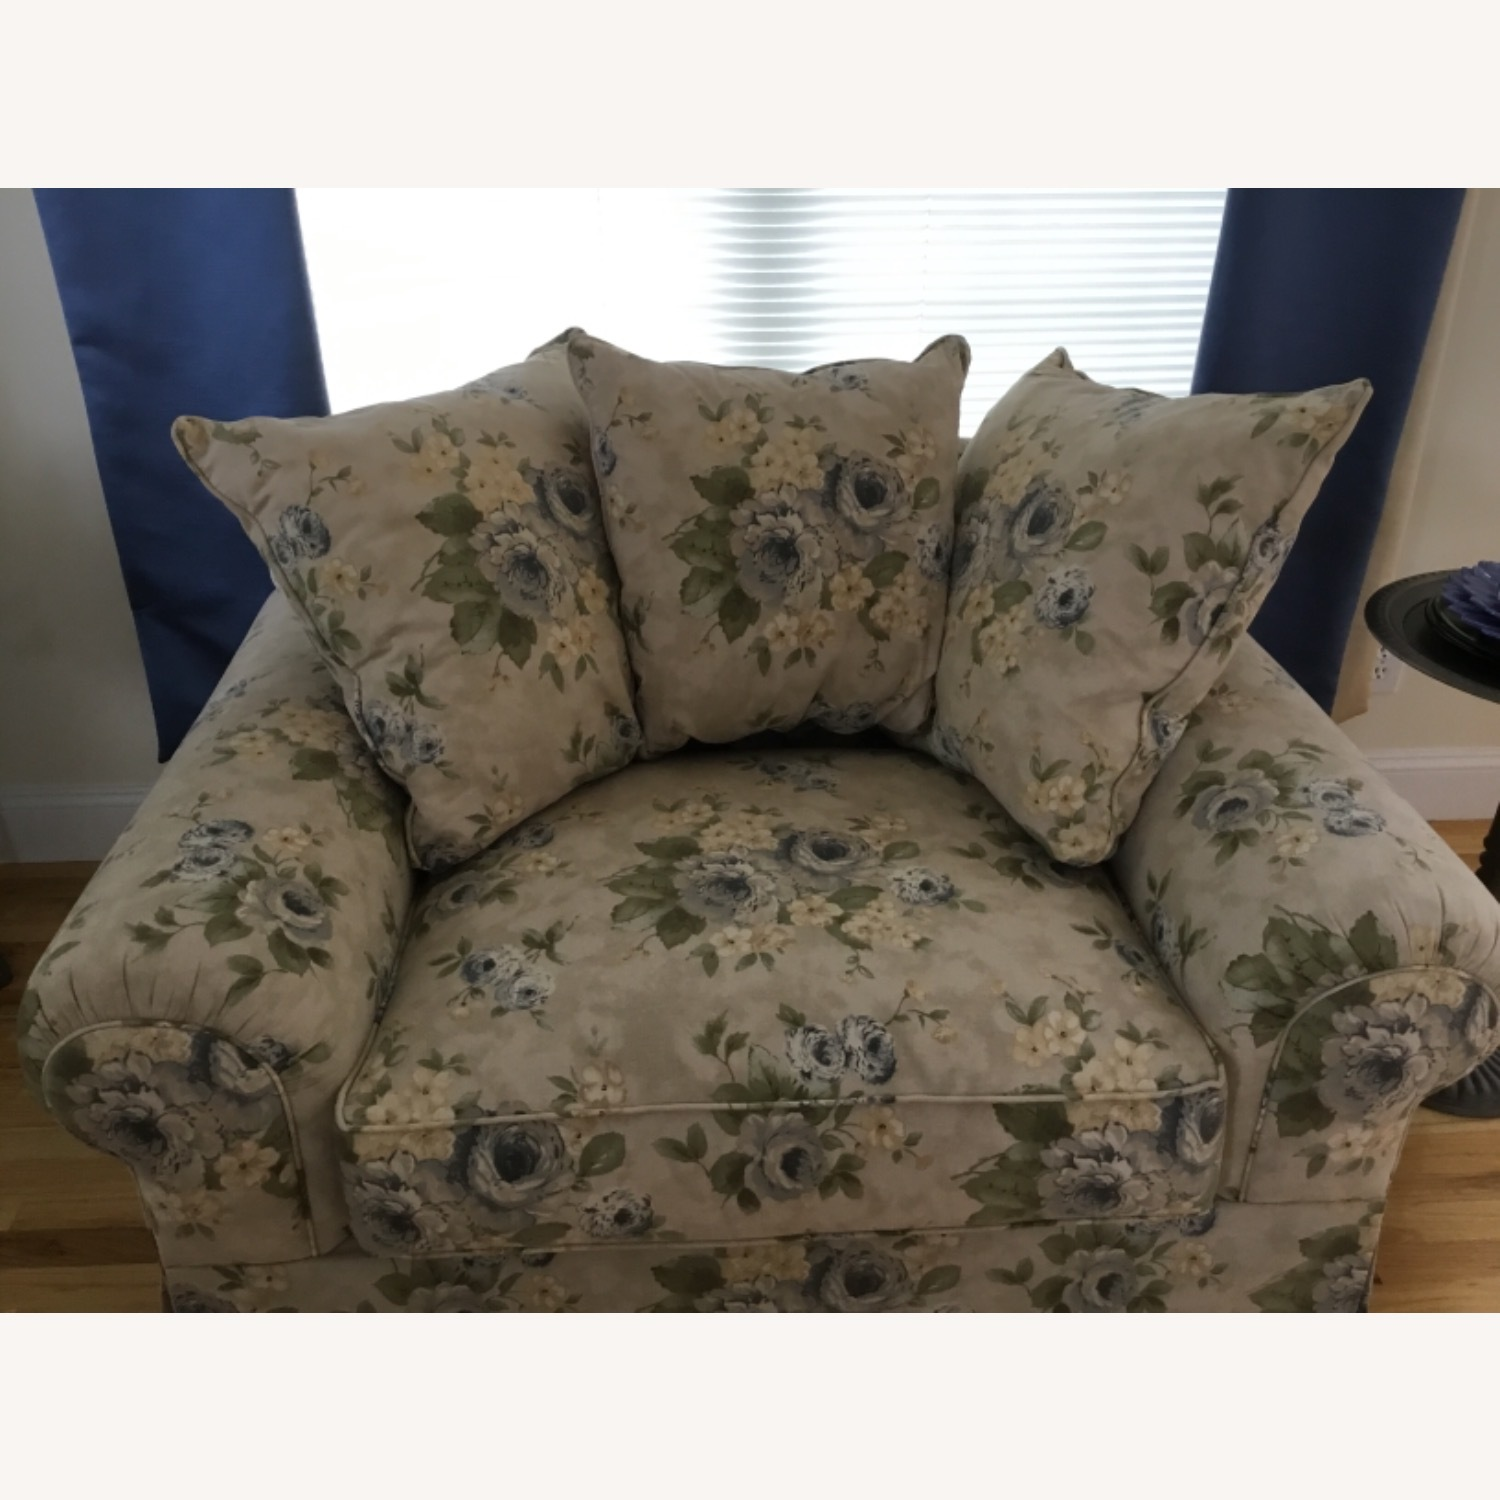 Wayside Furniture Oversized Chair - image-3